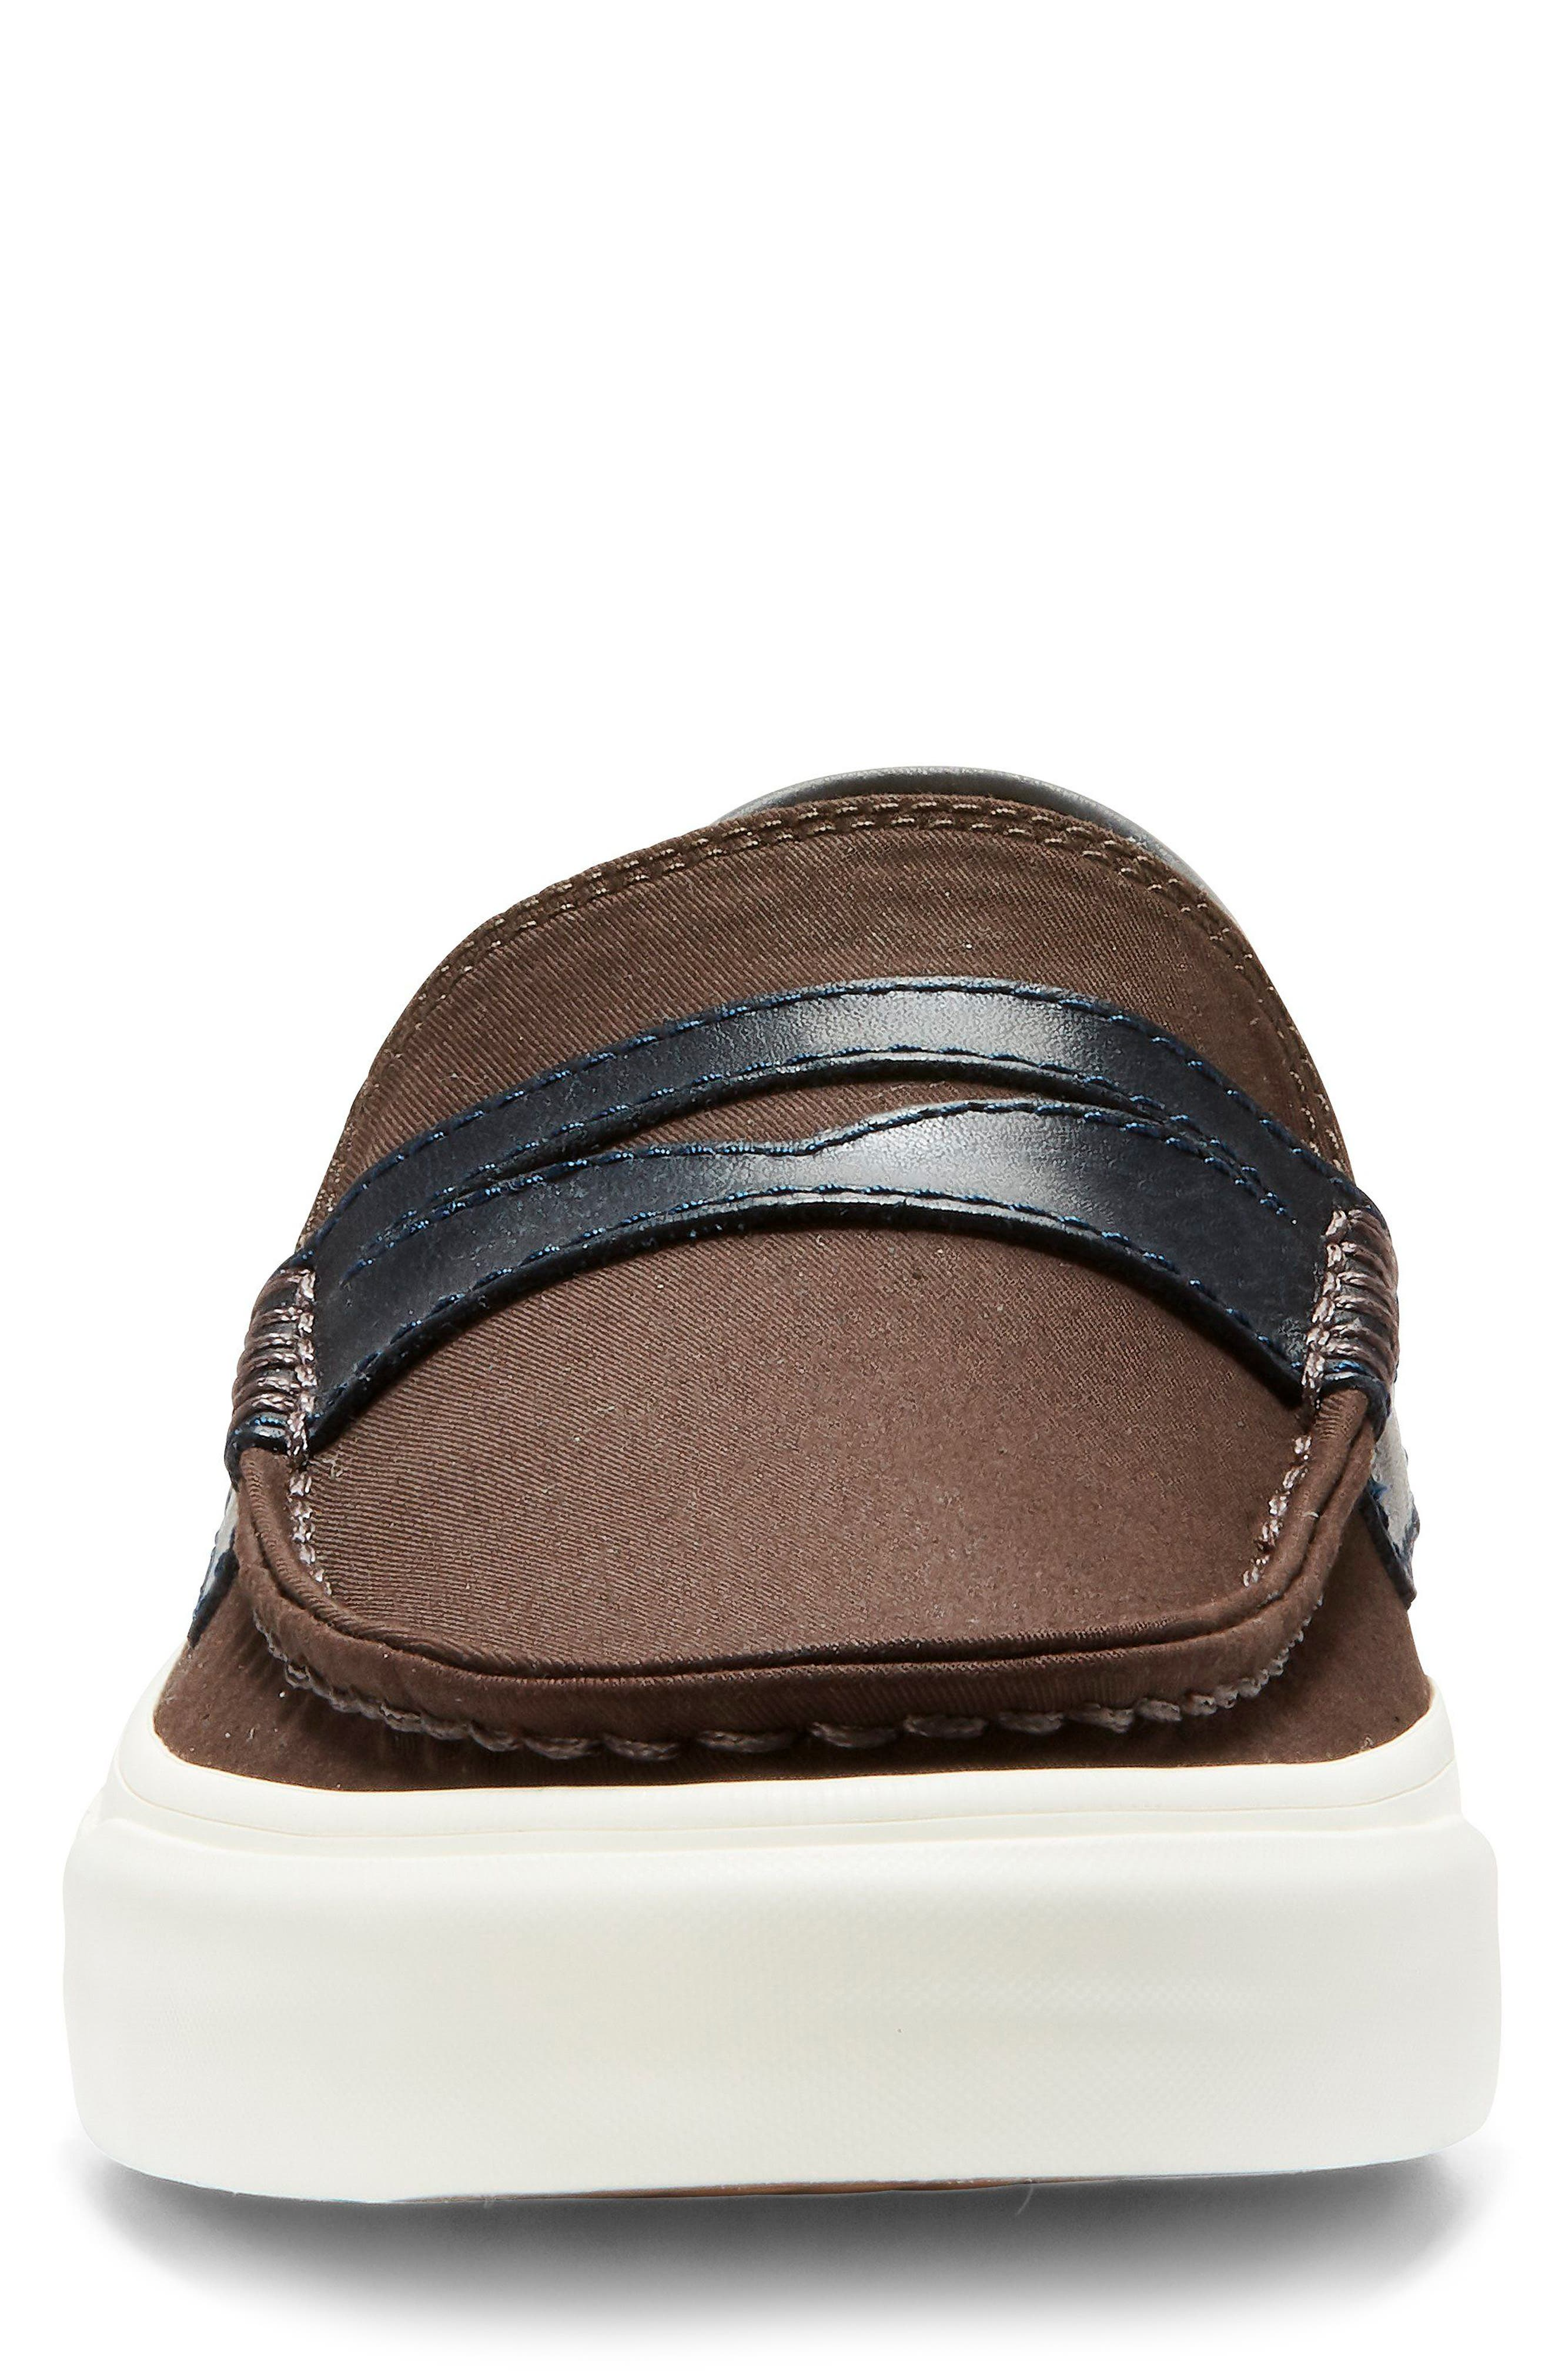 Pinch Weekend LX Penny Loafer,                             Alternate thumbnail 35, color,